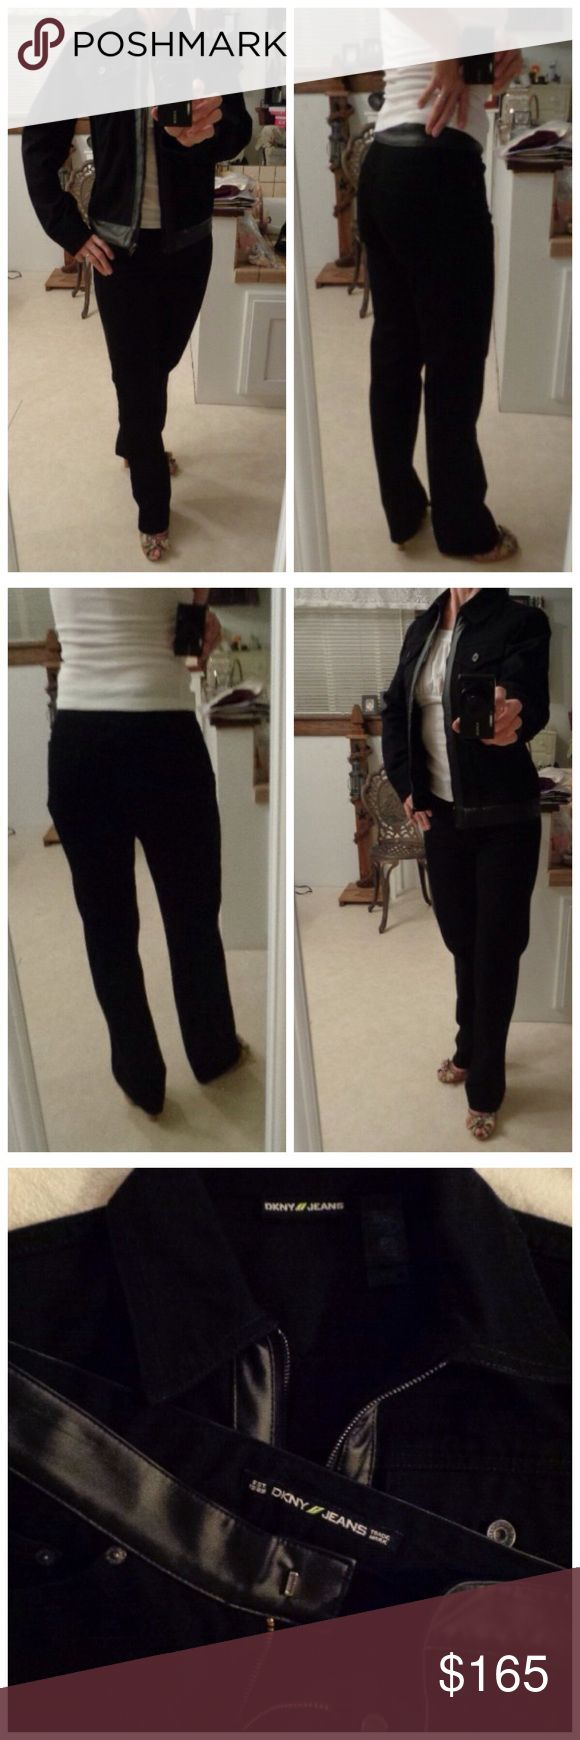 VINTAGE 2pc Black Denim Jacket/Jeans DKNY  Size 4 Found this set at a SaLe. Size 4 Donna Karen 2pc. Set. Black Cotton Denim with Faux Leather trim. Definitely Vintage. Absolutely- Like New Condition... I am not sure if it has ever been worn. Will list measurements when I return home from vacation. Thank you for browsing my closet. DKNY Jeans Straight Leg